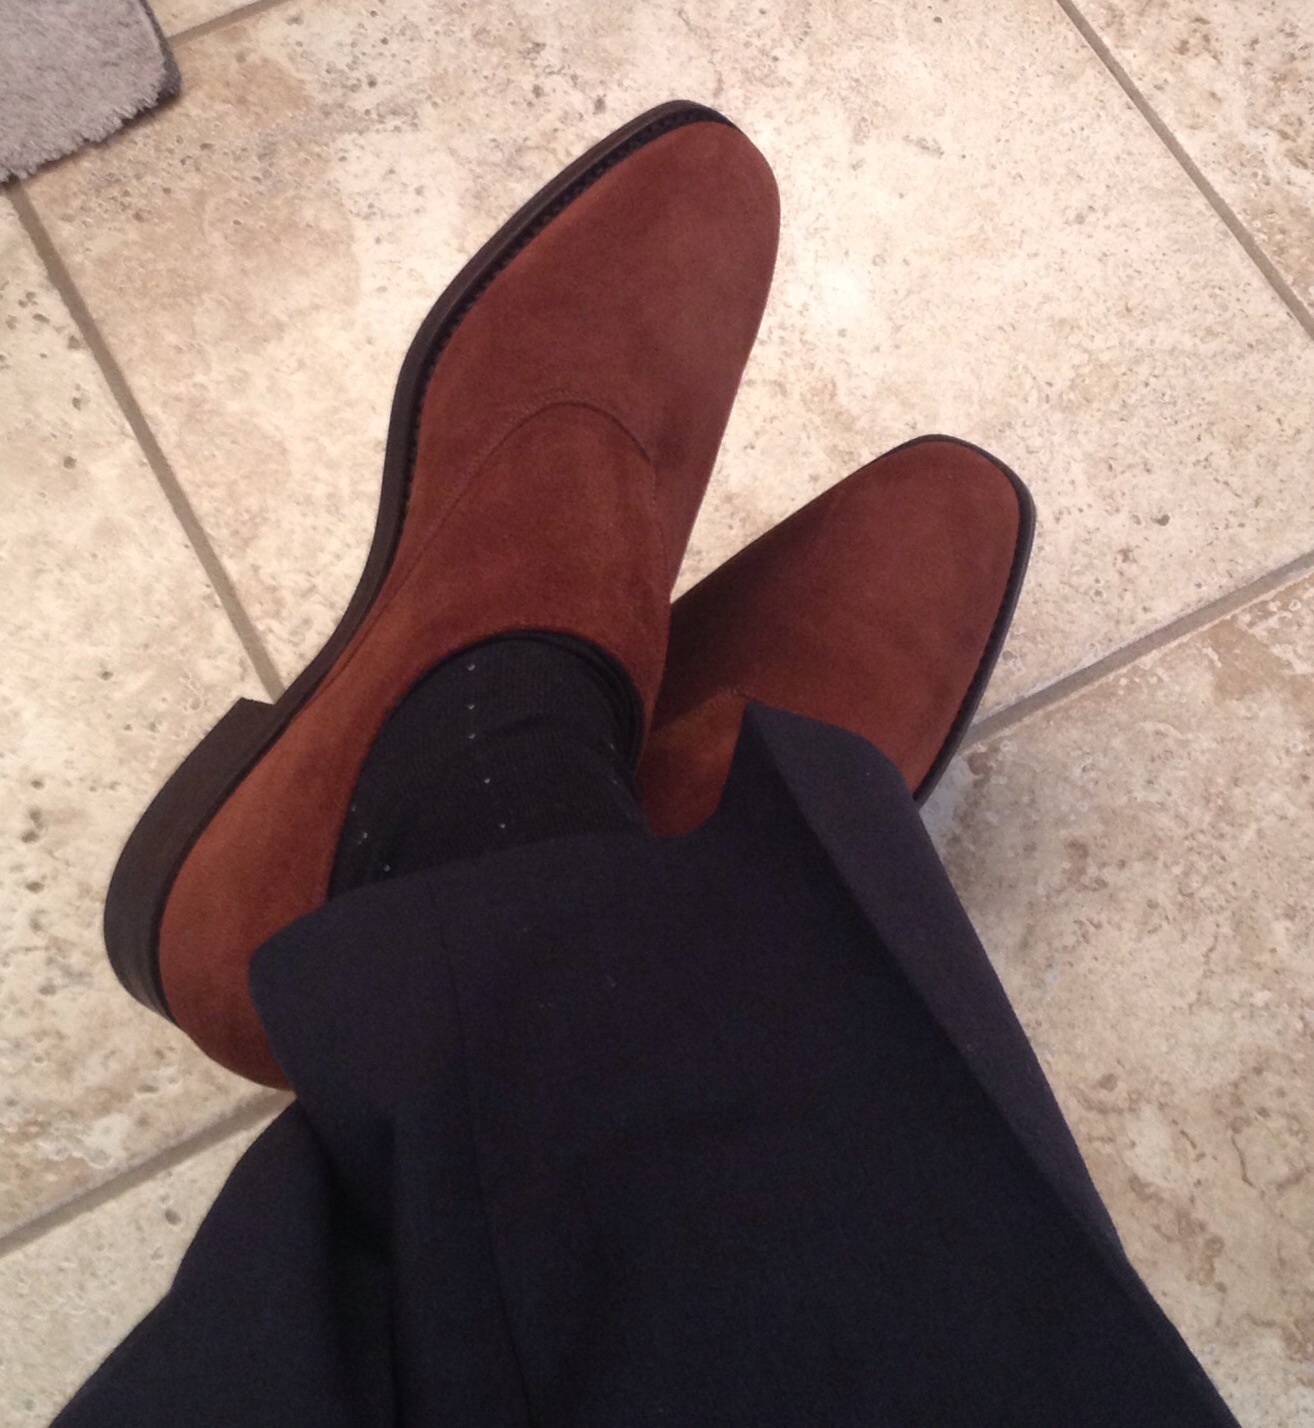 gladhands's photos in suede shoes - post 'em here!